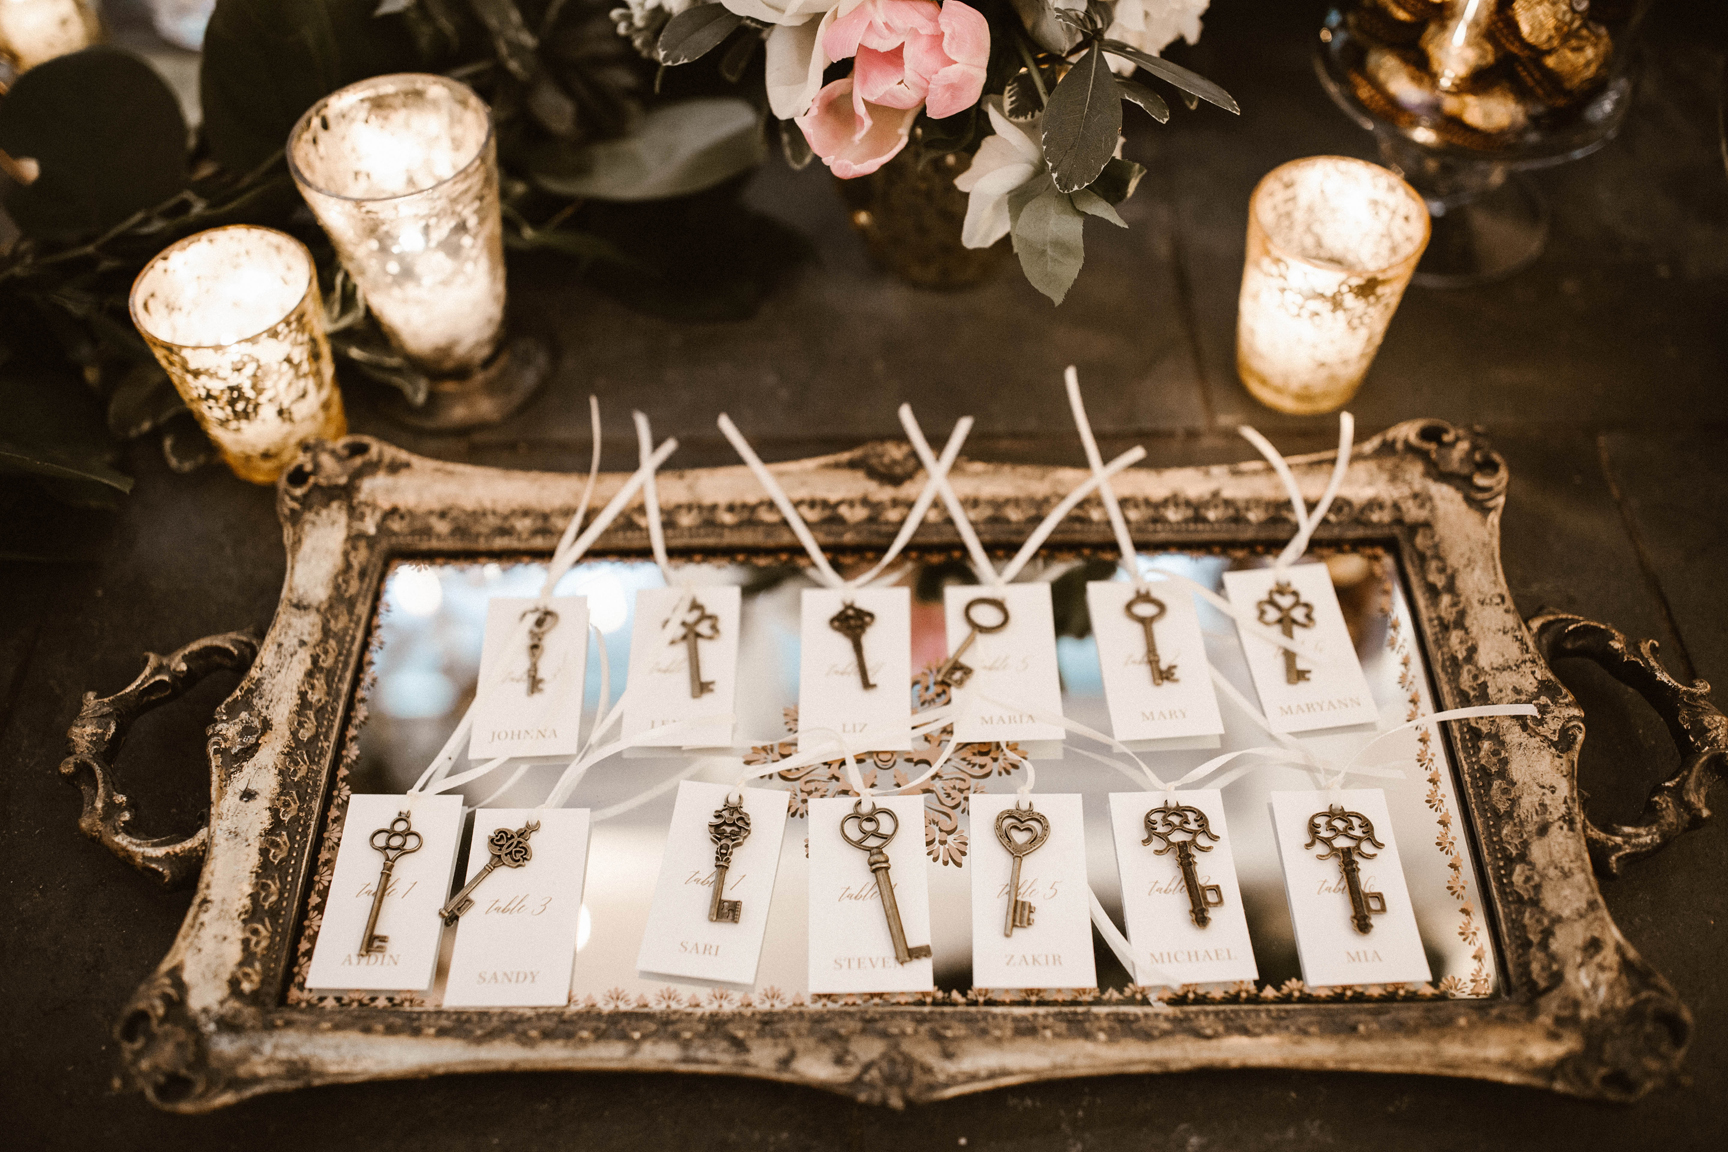 DeLille+Cellars_The+Chateau_Woodinville_2017_Weddings+In+Woodinville95.jpg